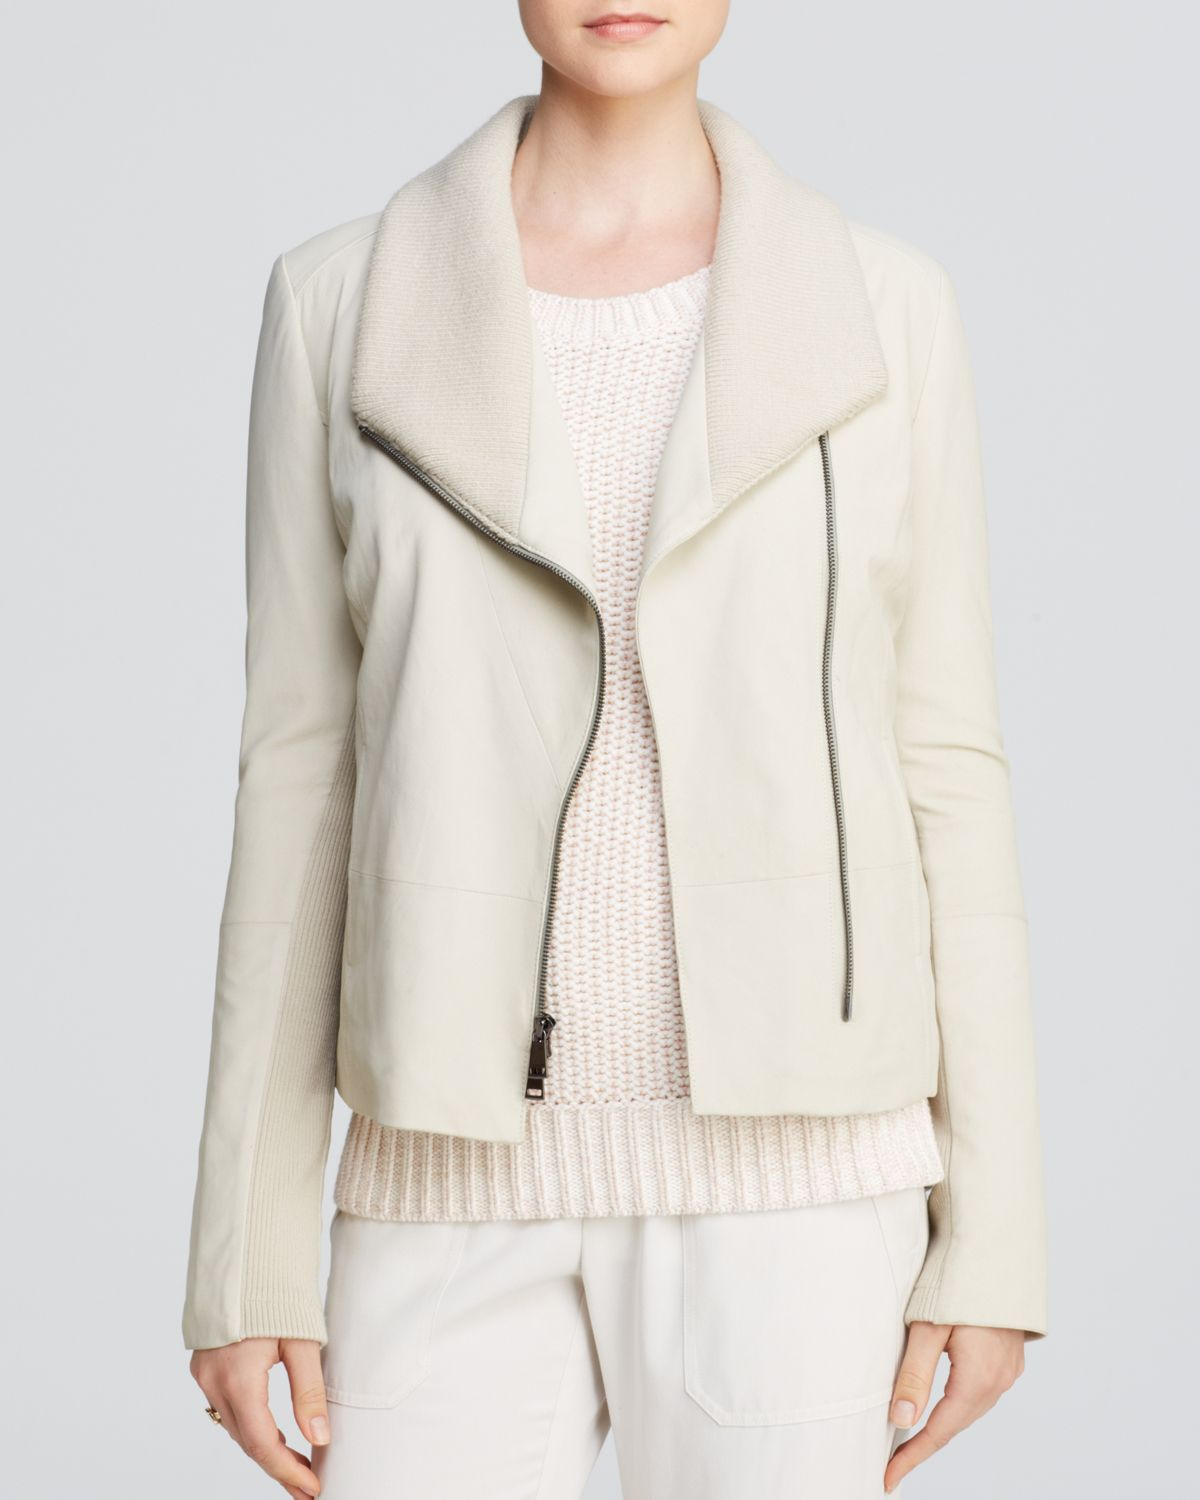 Cheap Sale Finishline Vince Rib Knit-Paneled Leather Jacket Discount 2018 With Paypal For Sale ylTxEUHz5